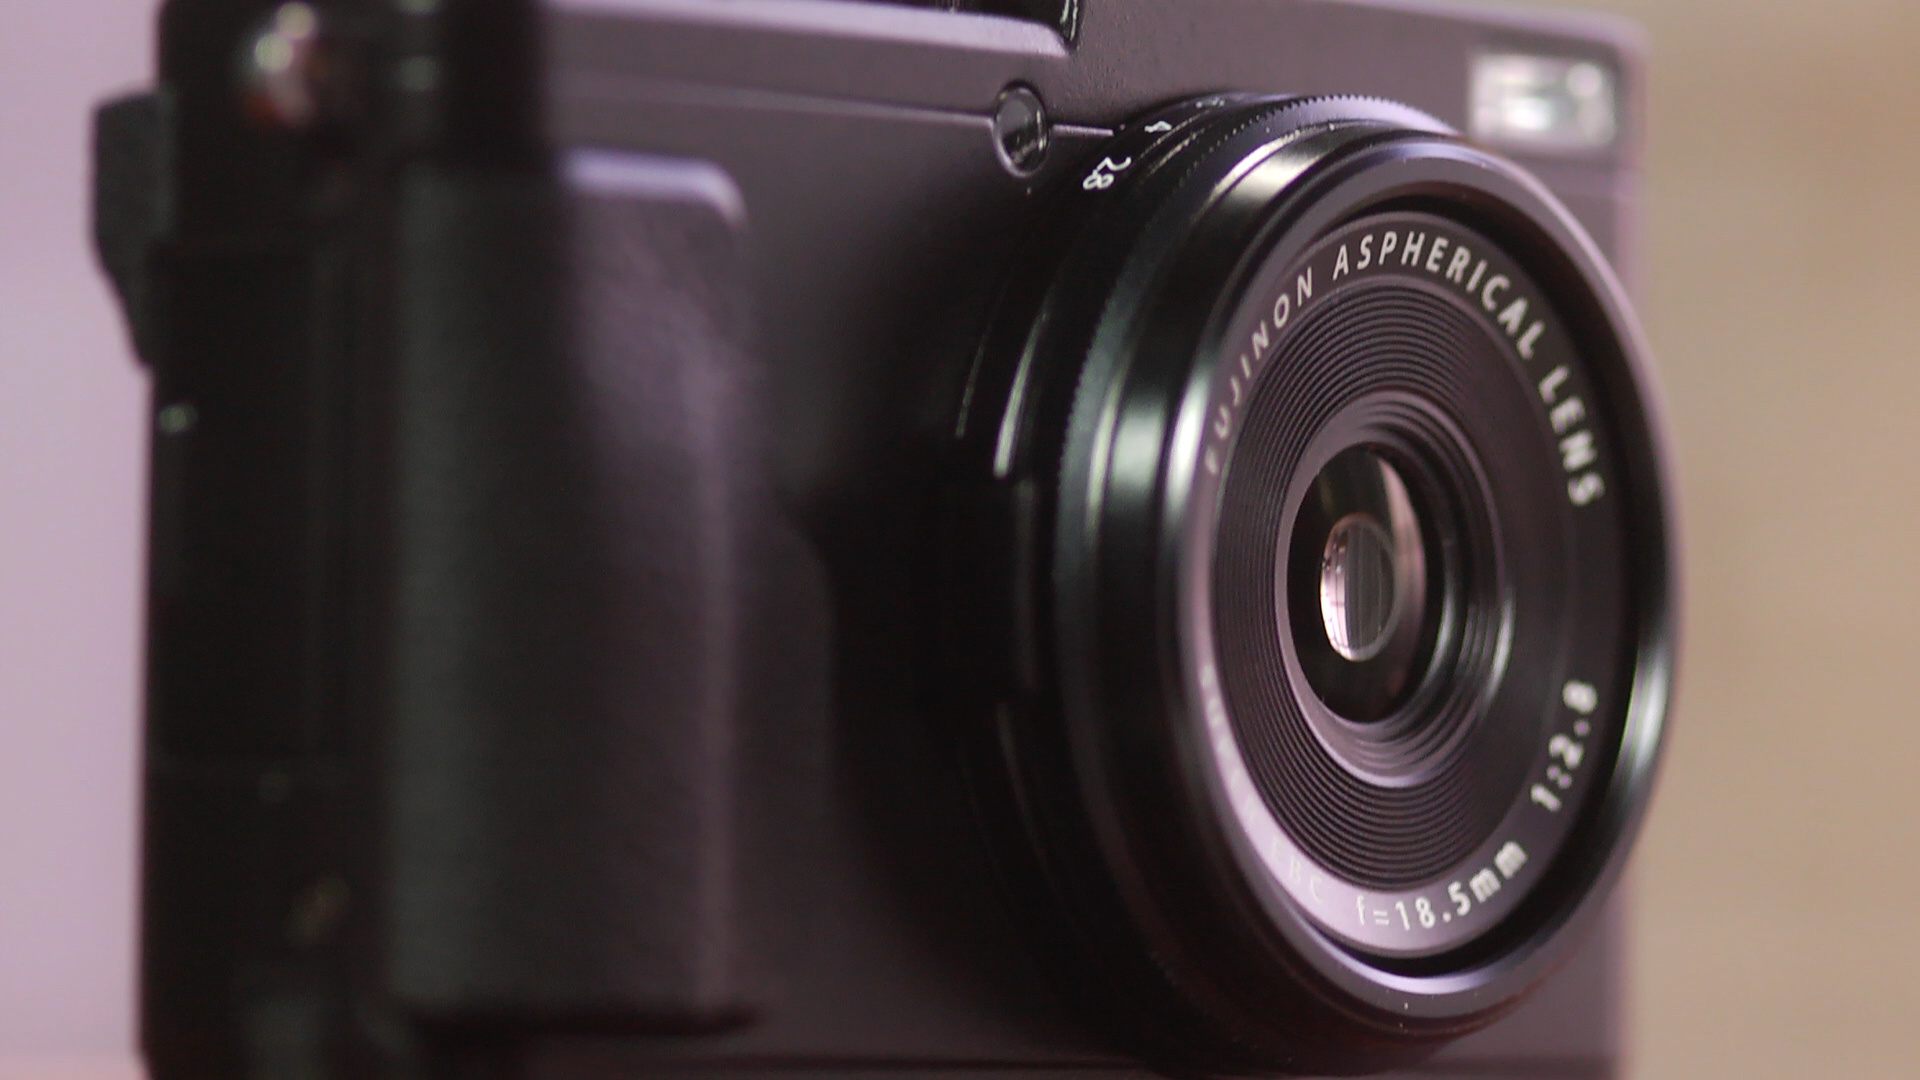 Video: Fujifilm X70: A camera for the wide world